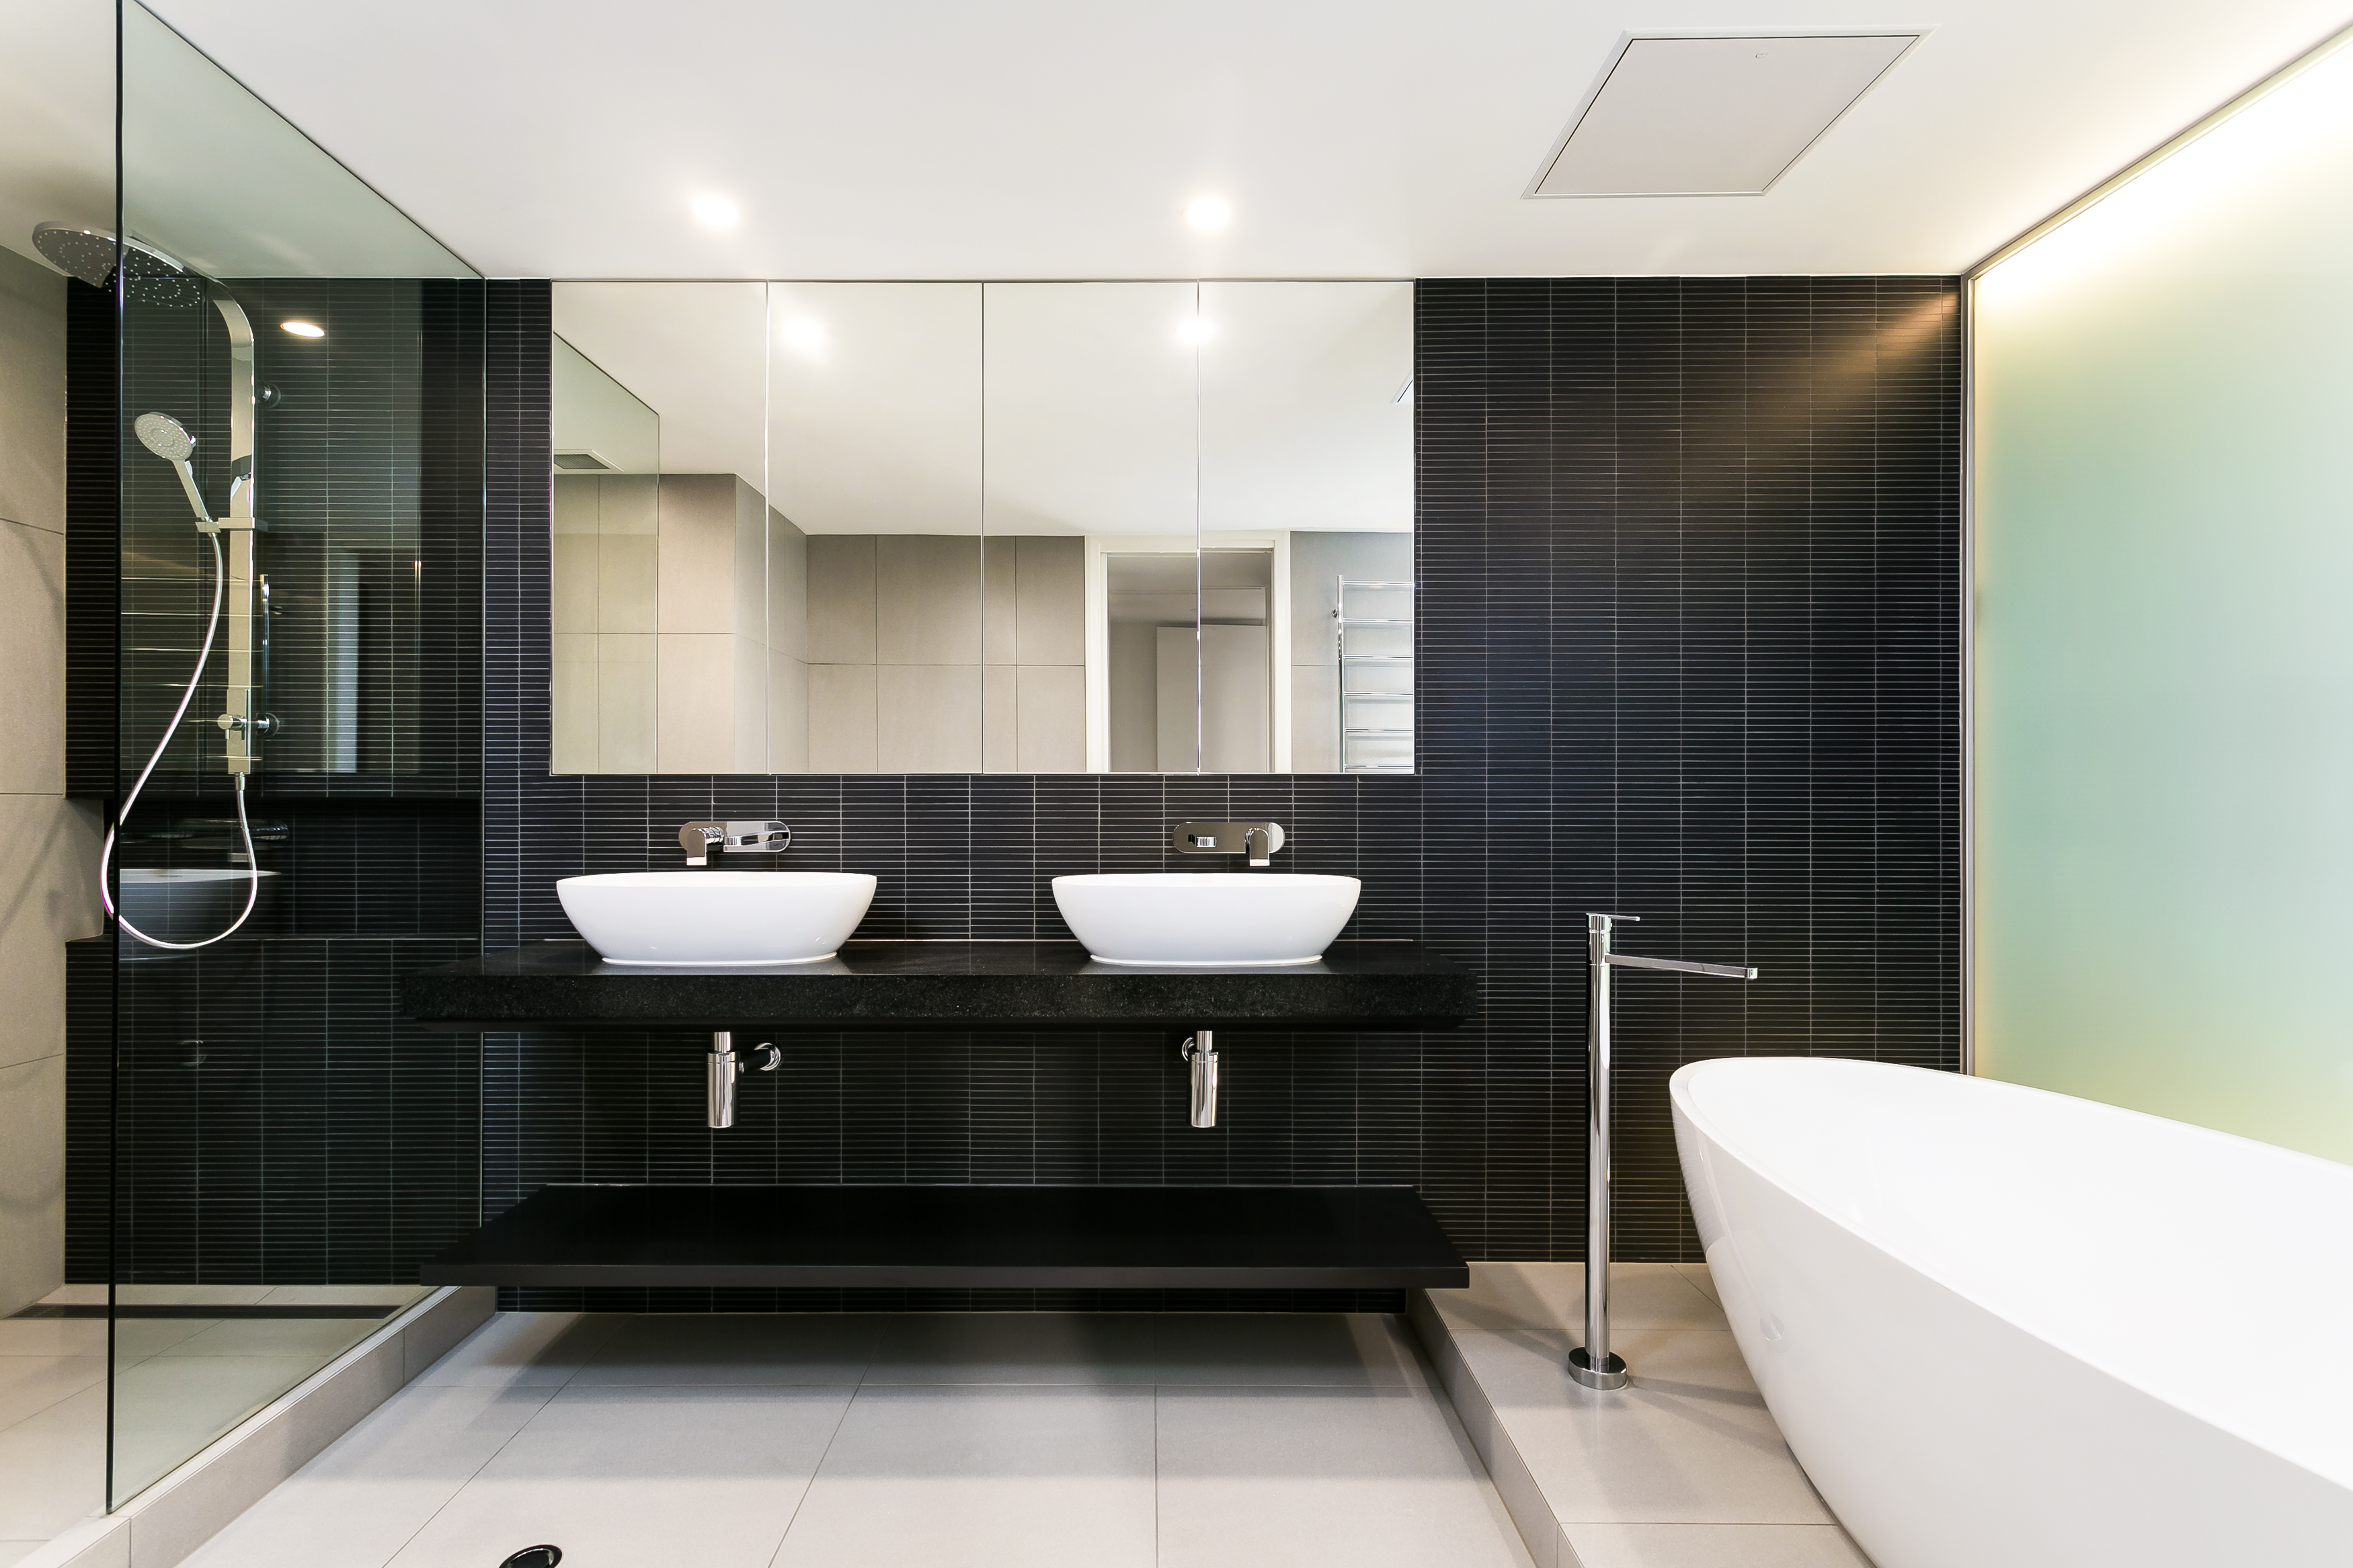 The master bath hosts a high contrast mixture of tones, with black tiled wall over off-white large format beige floor tiling, plus white pedestal tub and vessel sinks. The floating black vanity hangs next to a large glass enclosed shower.